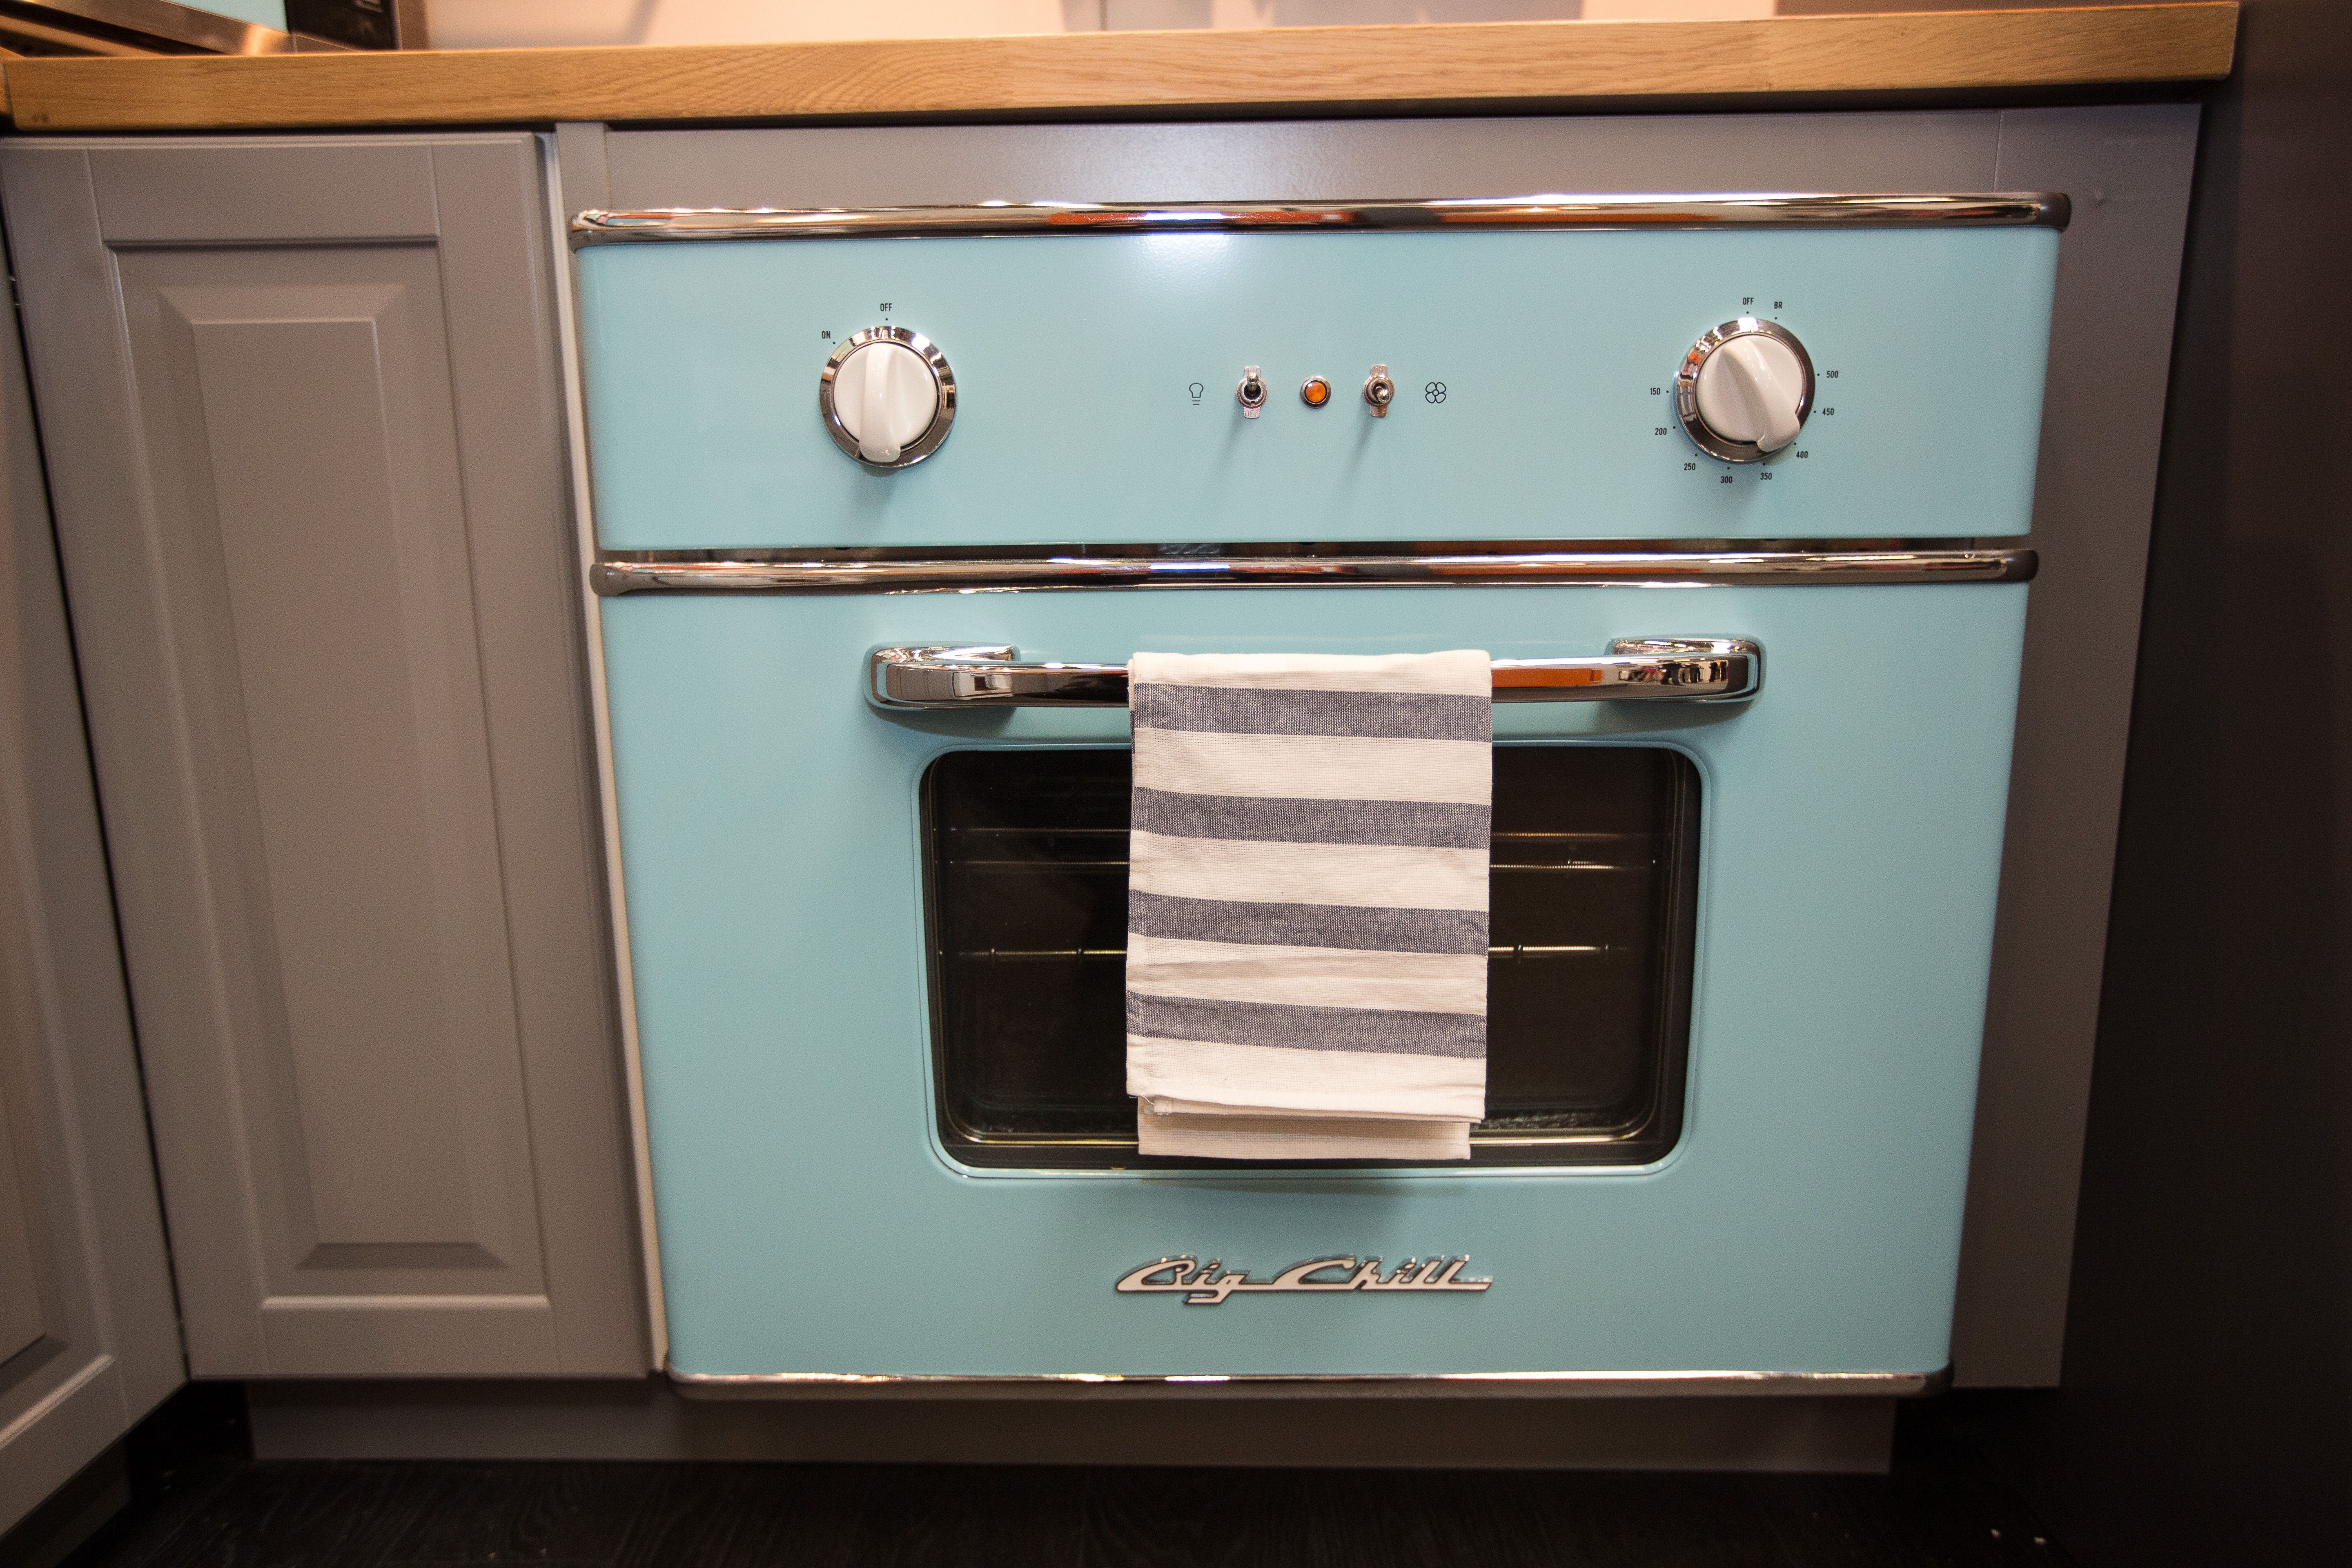 30 Wall Ovens